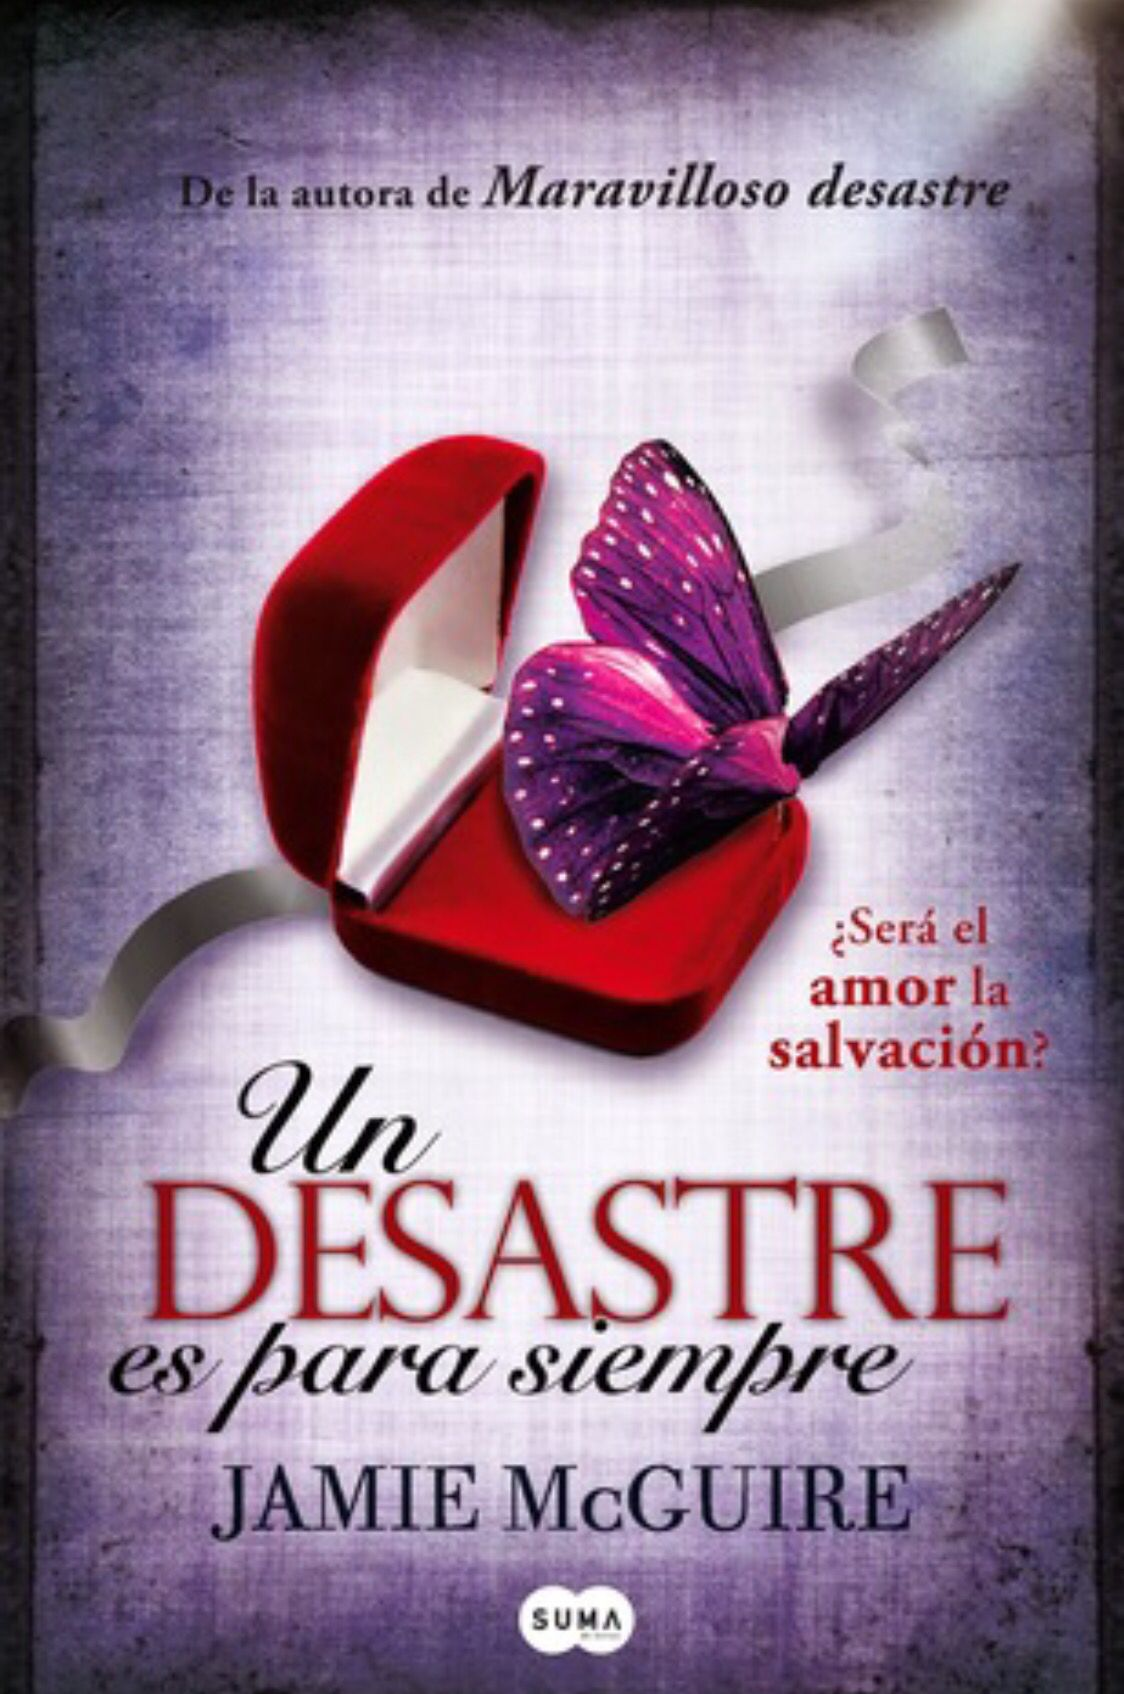 A Beautiful Wedding Jamie Mcguire Foreign Edition Spanish Travismaddox